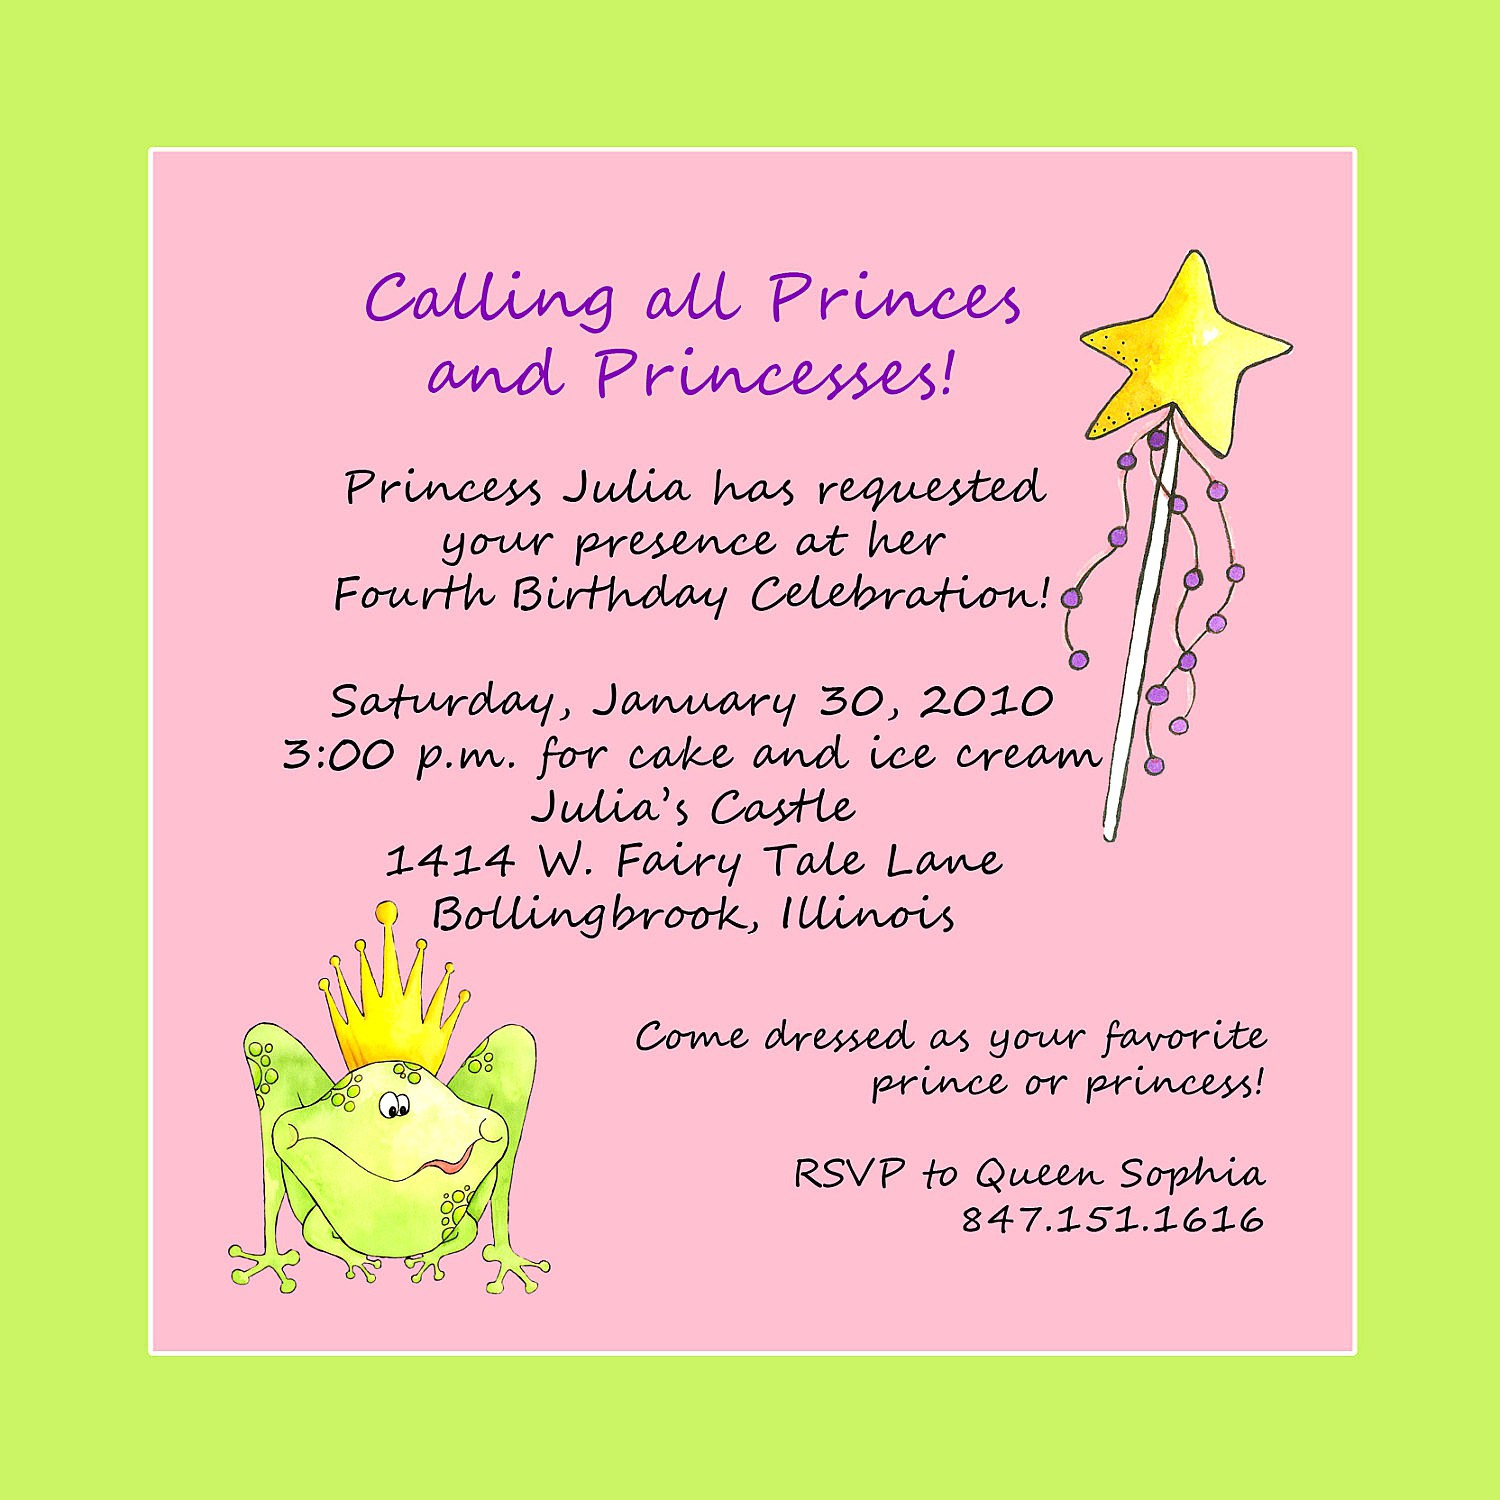 birthday invitation quotes for friends ; invitation-for-birthday-party-quotes-new-birthday-invitations-quotes-party-friends-picture-of-invitation-for-birthday-party-quotes